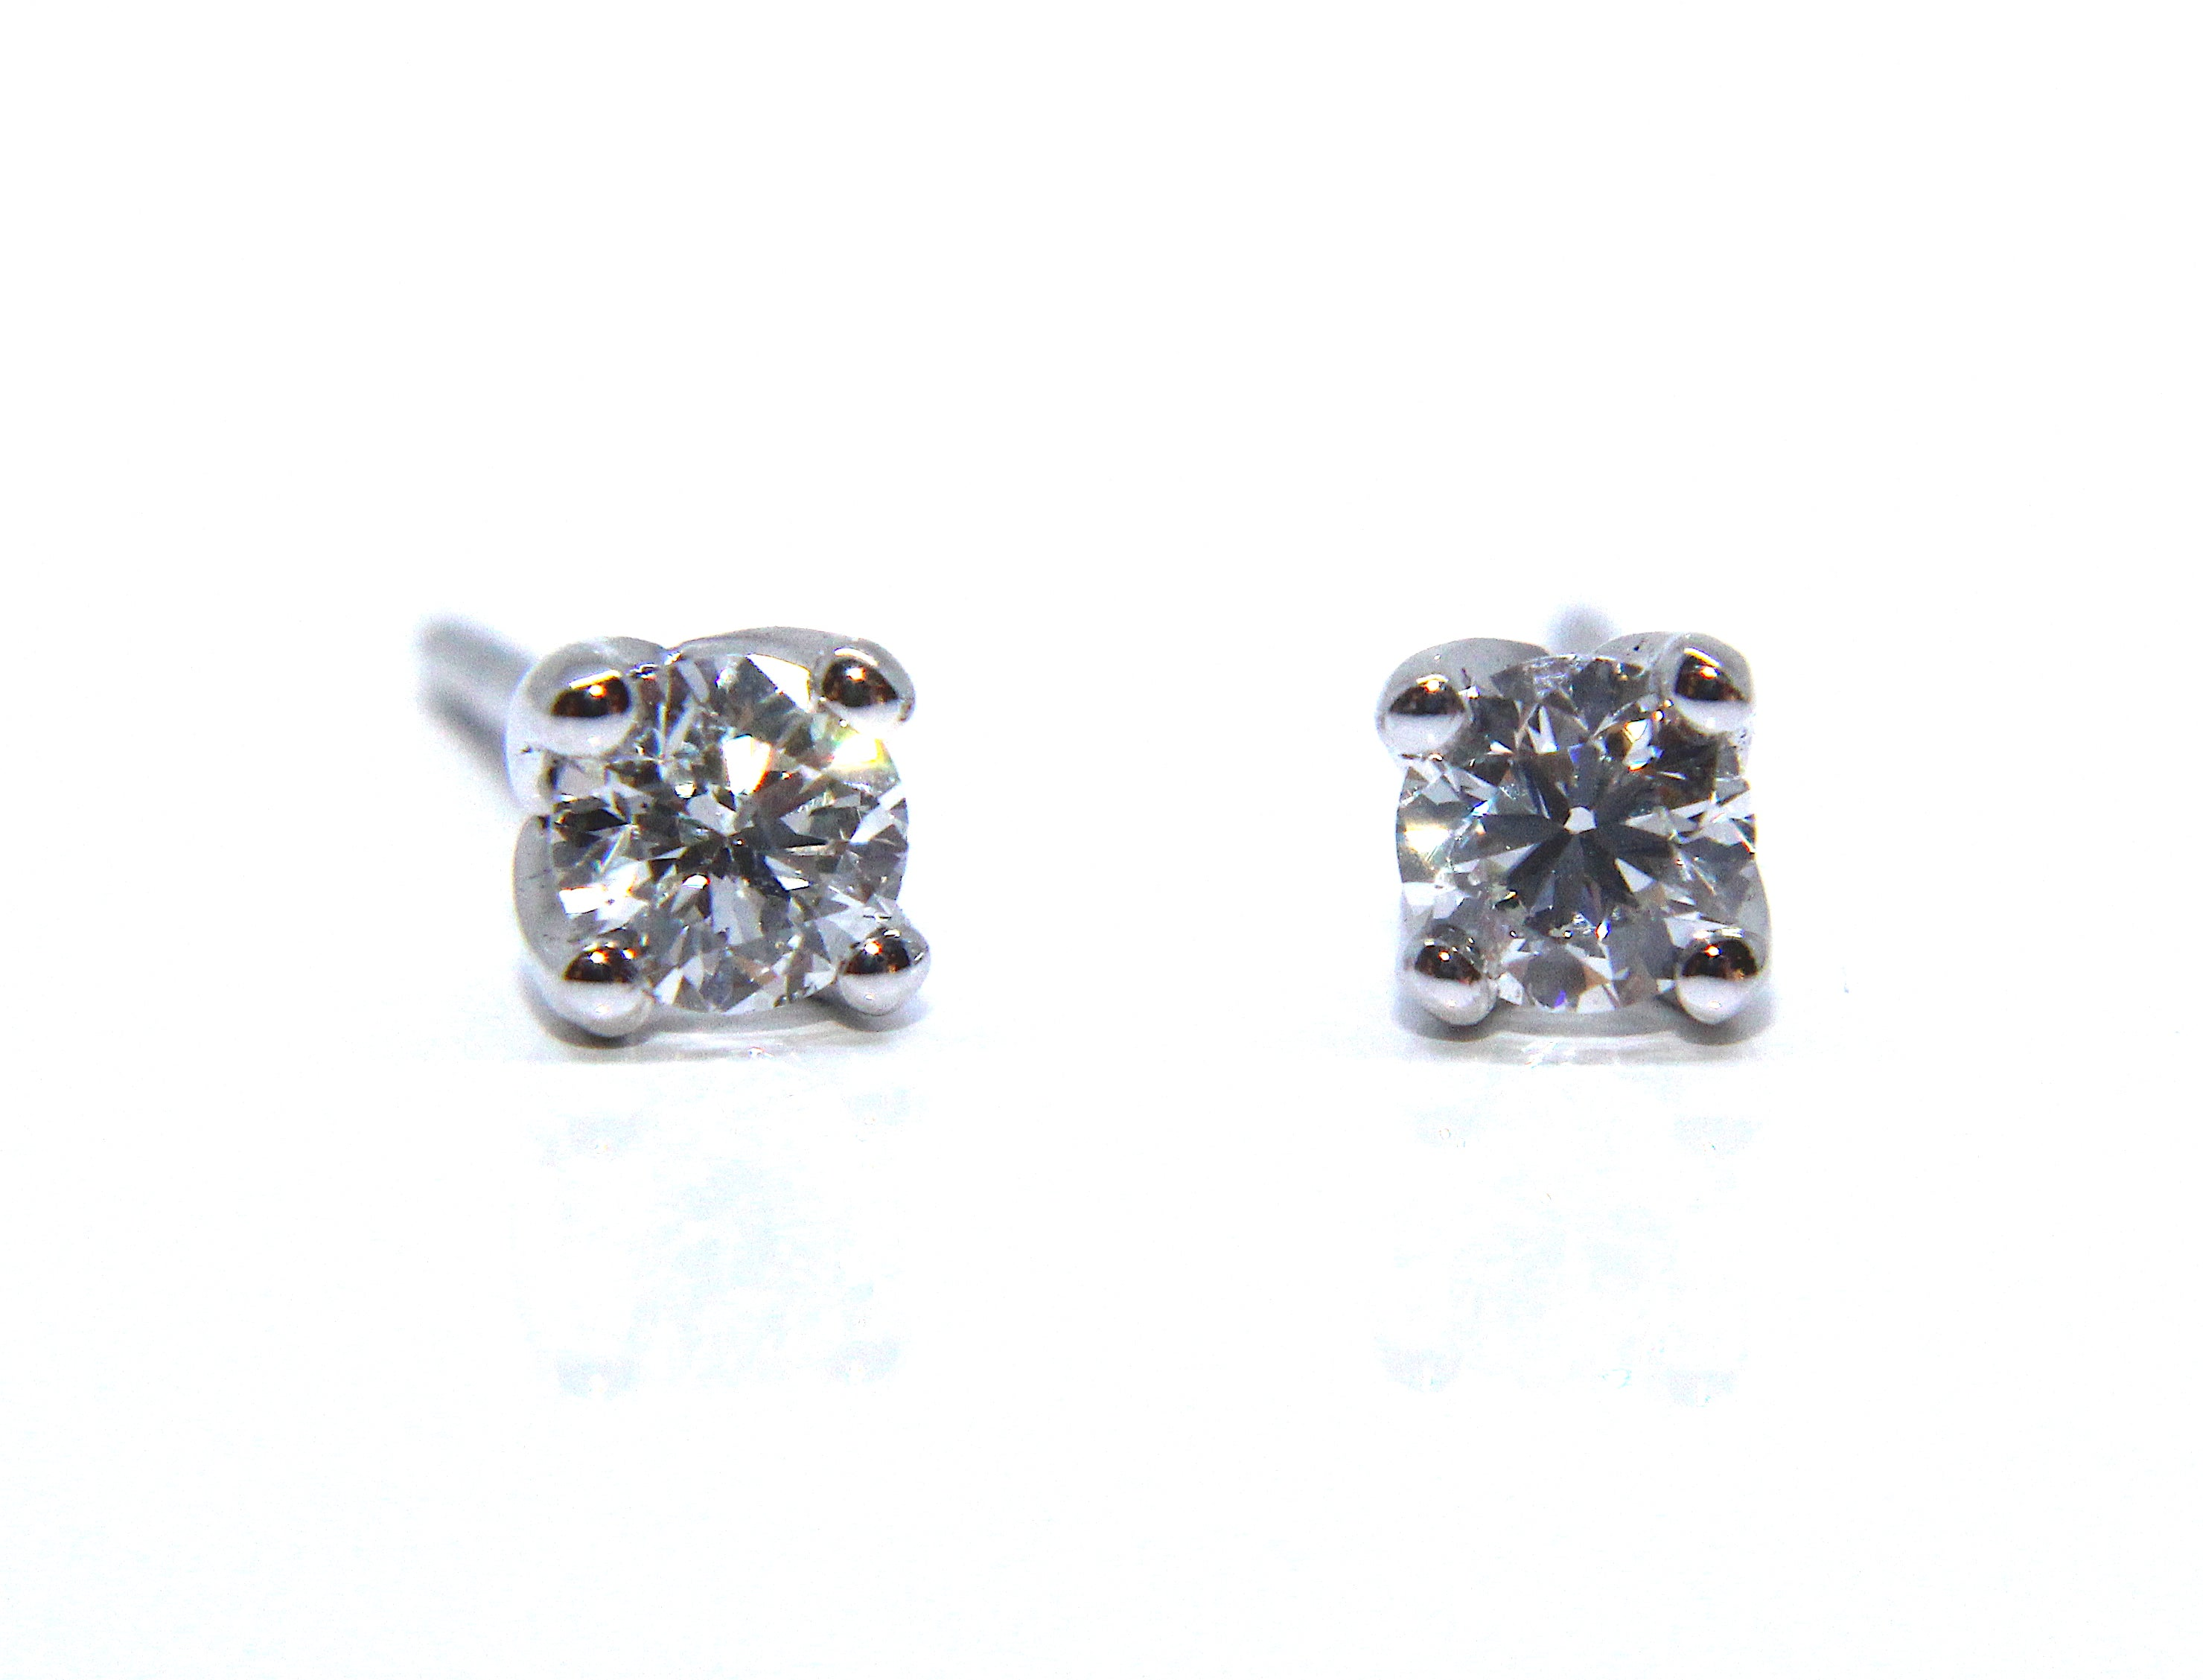 nugget jewellery white l earrings large diamond stud p product